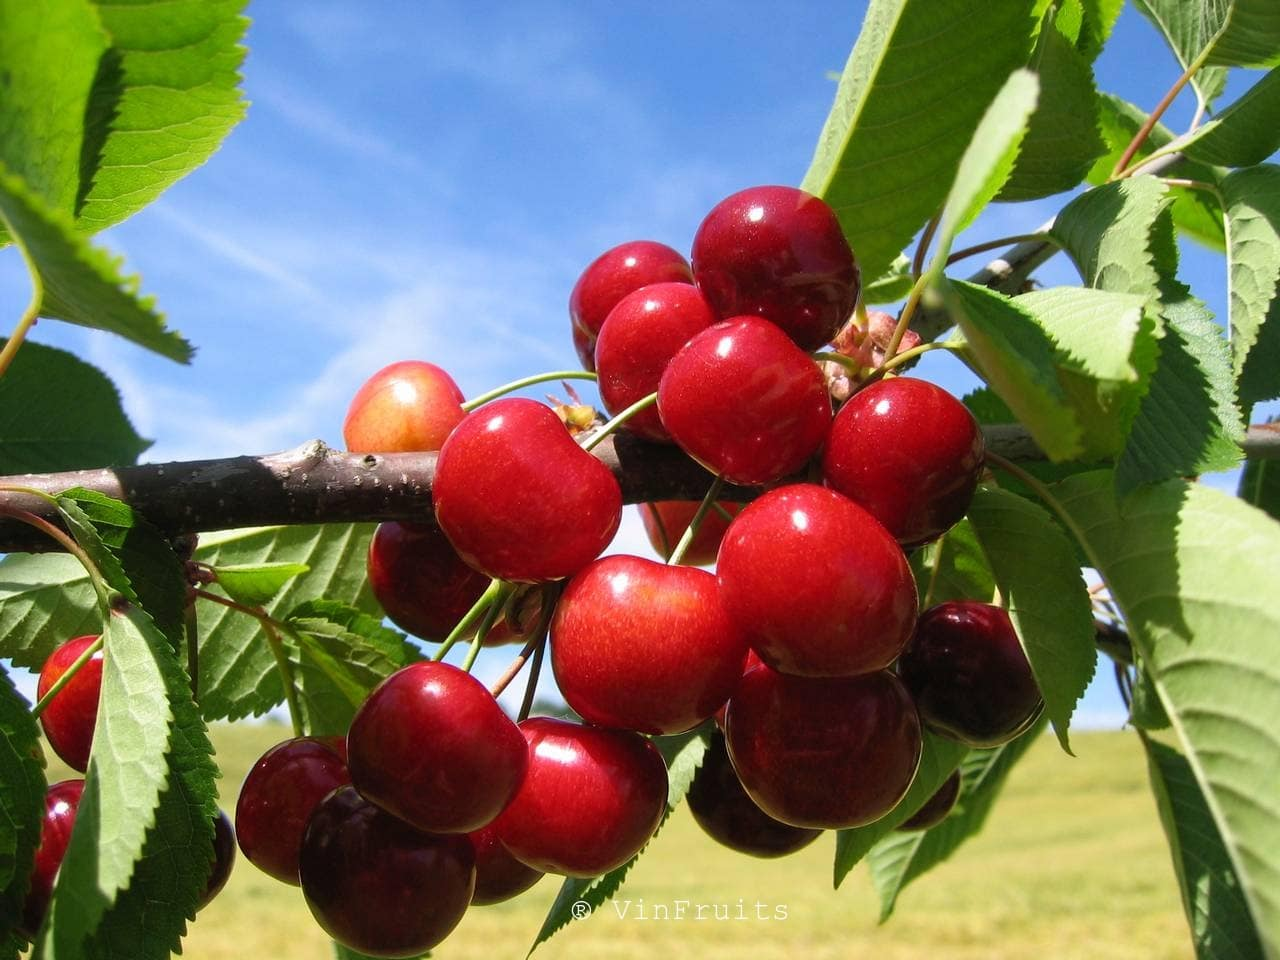 Cherries Mỹ - Vinfruits